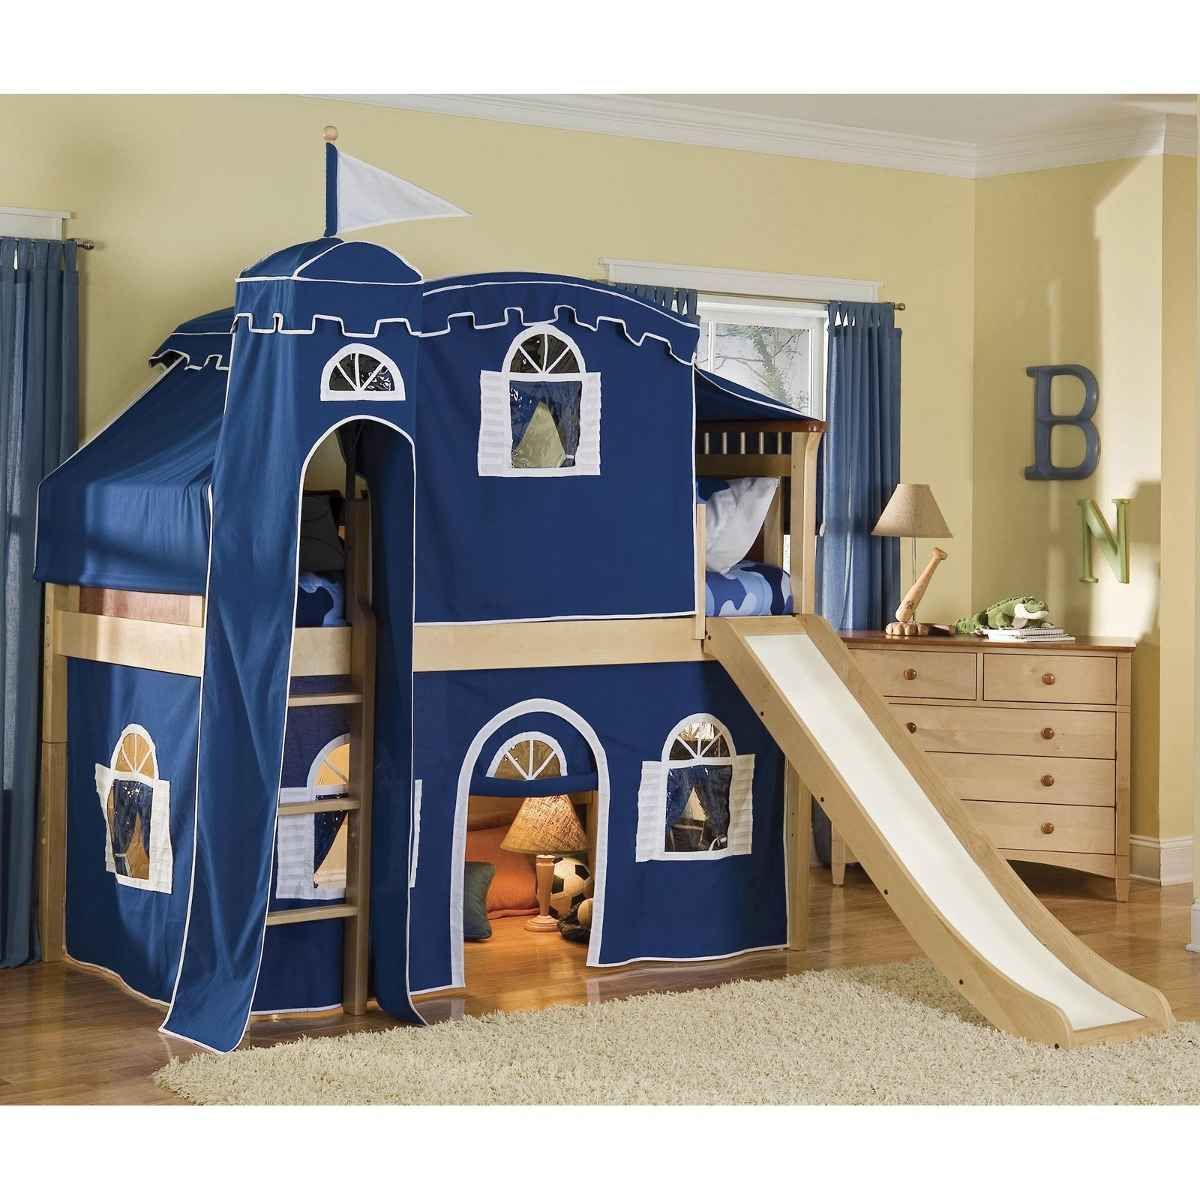 Bunk beds with slide and tent - Bunk Bed Tents For Boys Blue Tent Castle Bed For Children